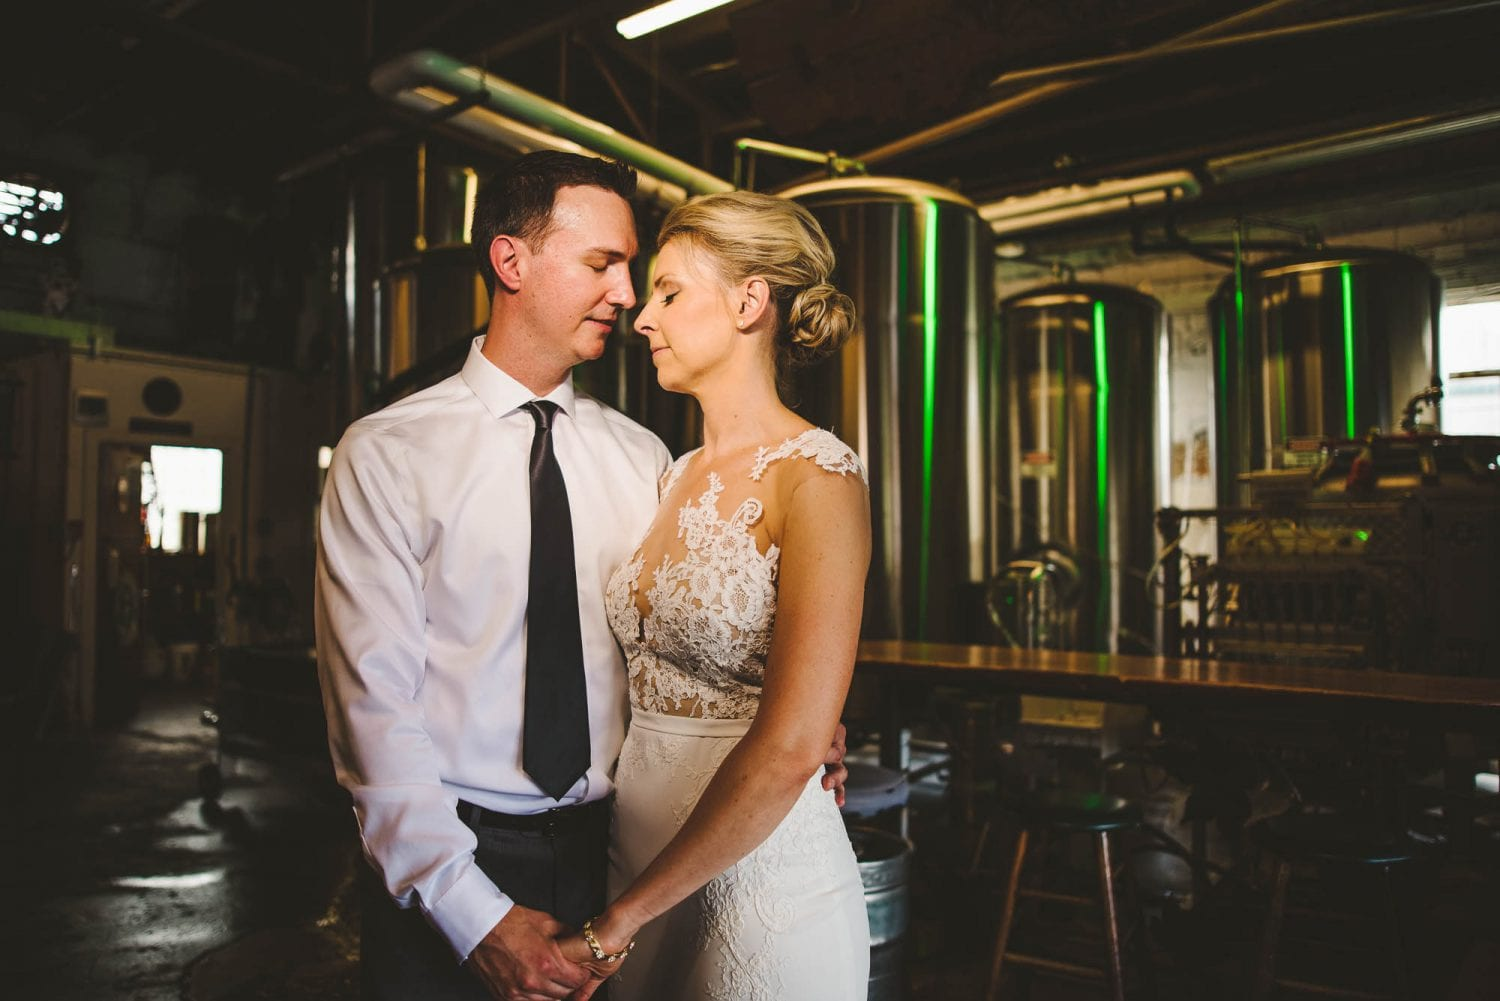 Brewery wedding photo